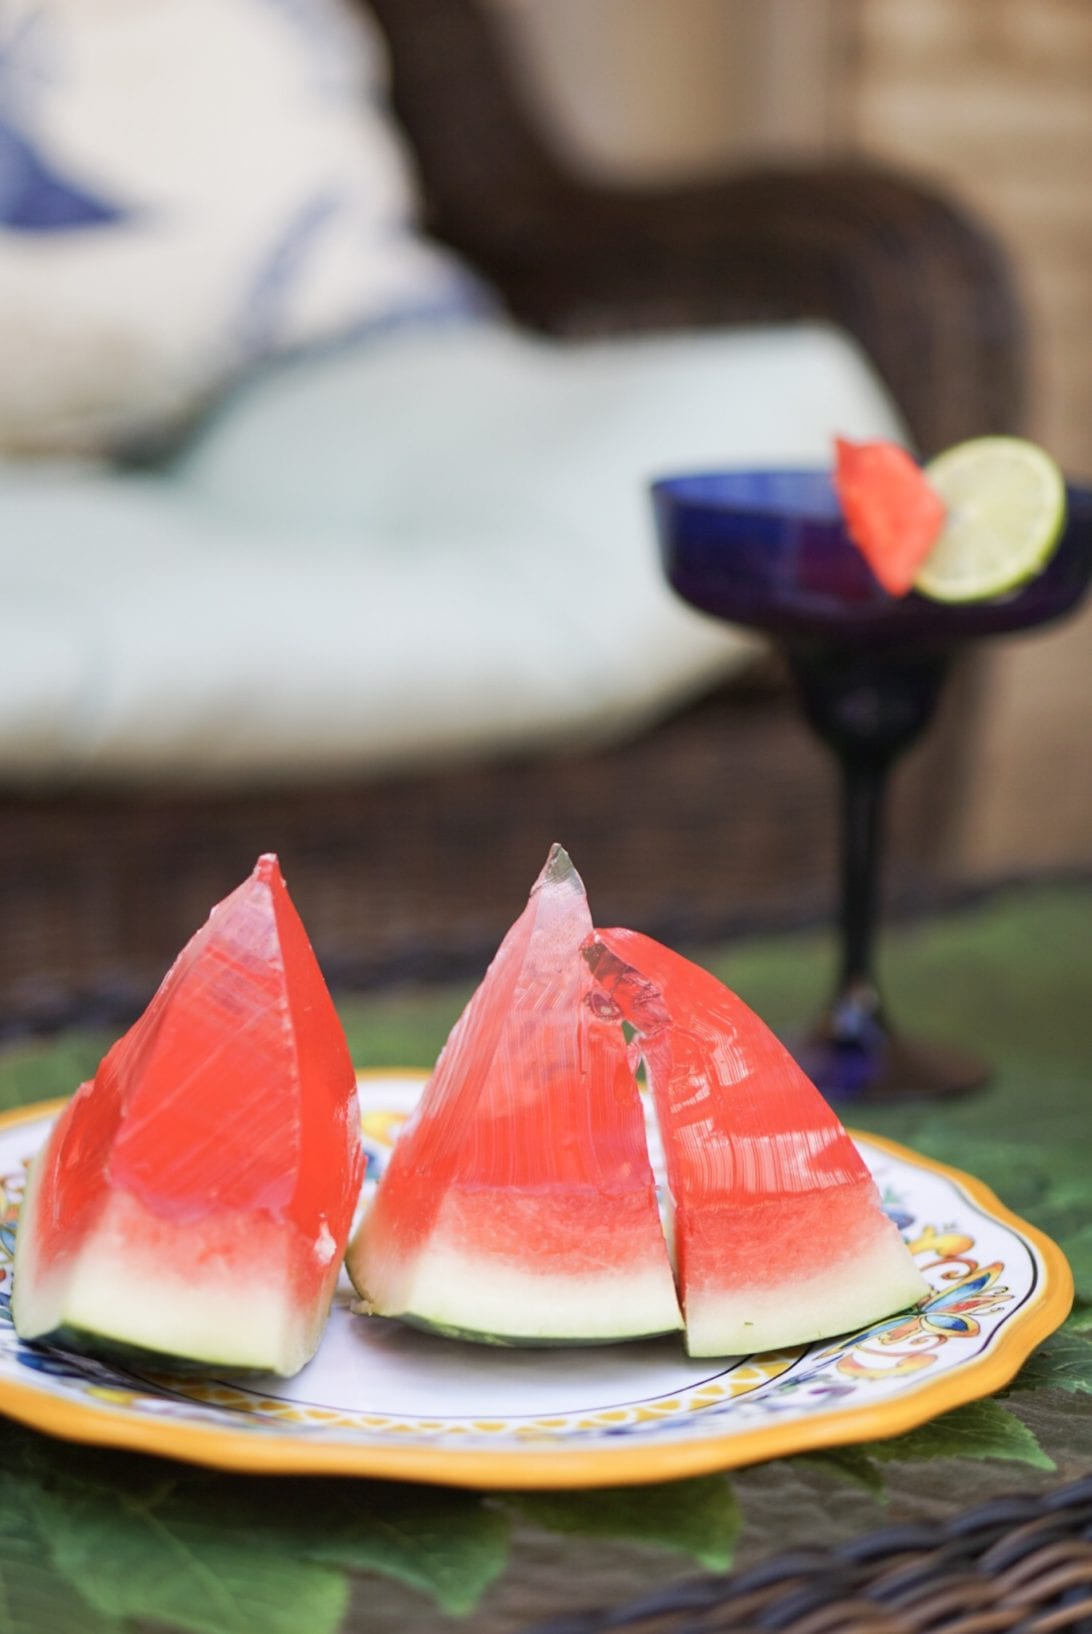 Easy to Make Watermelon Drinks for Summer, watermelon drinks, watermelon sangria, watermelon jello shots, alcoholic drinks, party drinks, summer drinks, beverages, memorial day, jello shots, watermelon